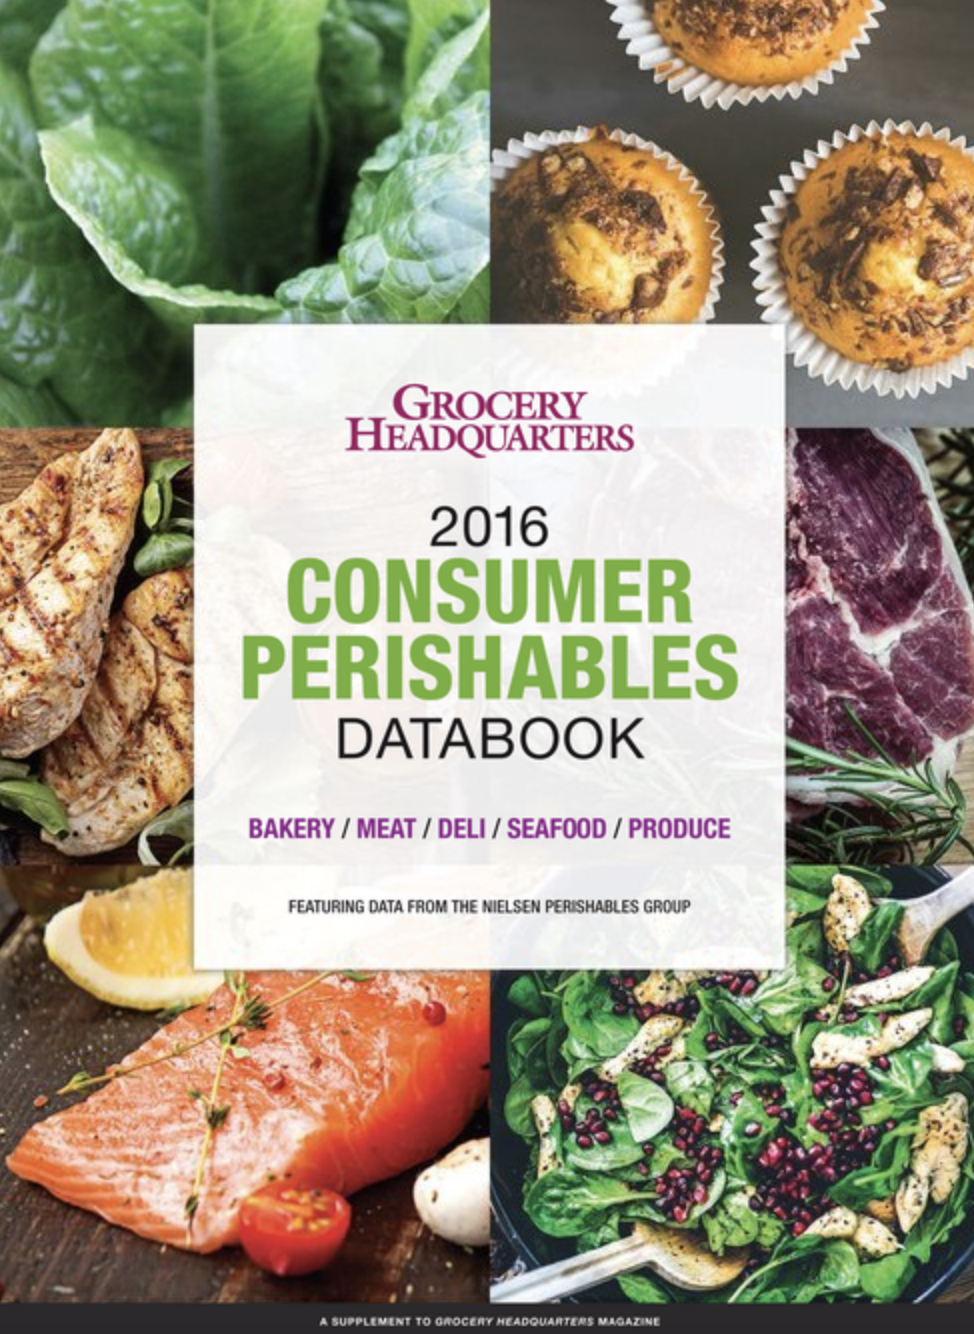 Winsight Grocery Business Magazine Consumer Perishables 2016 Issue